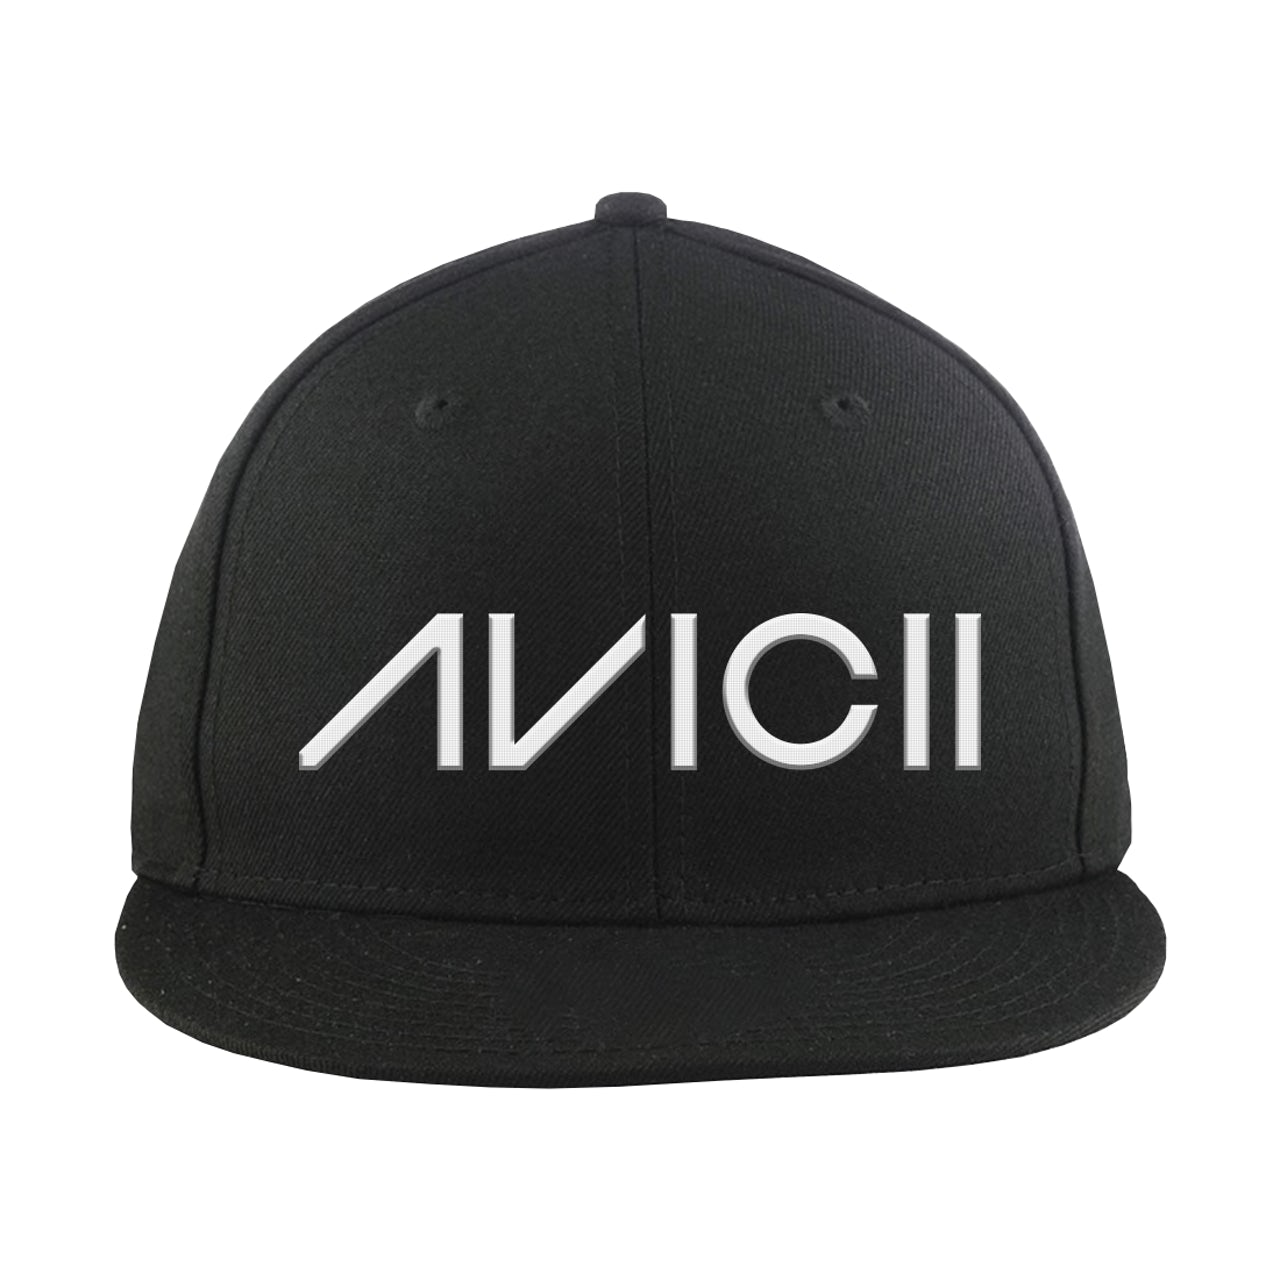 Avicii TIM HAT + DIGITAL ALBUM